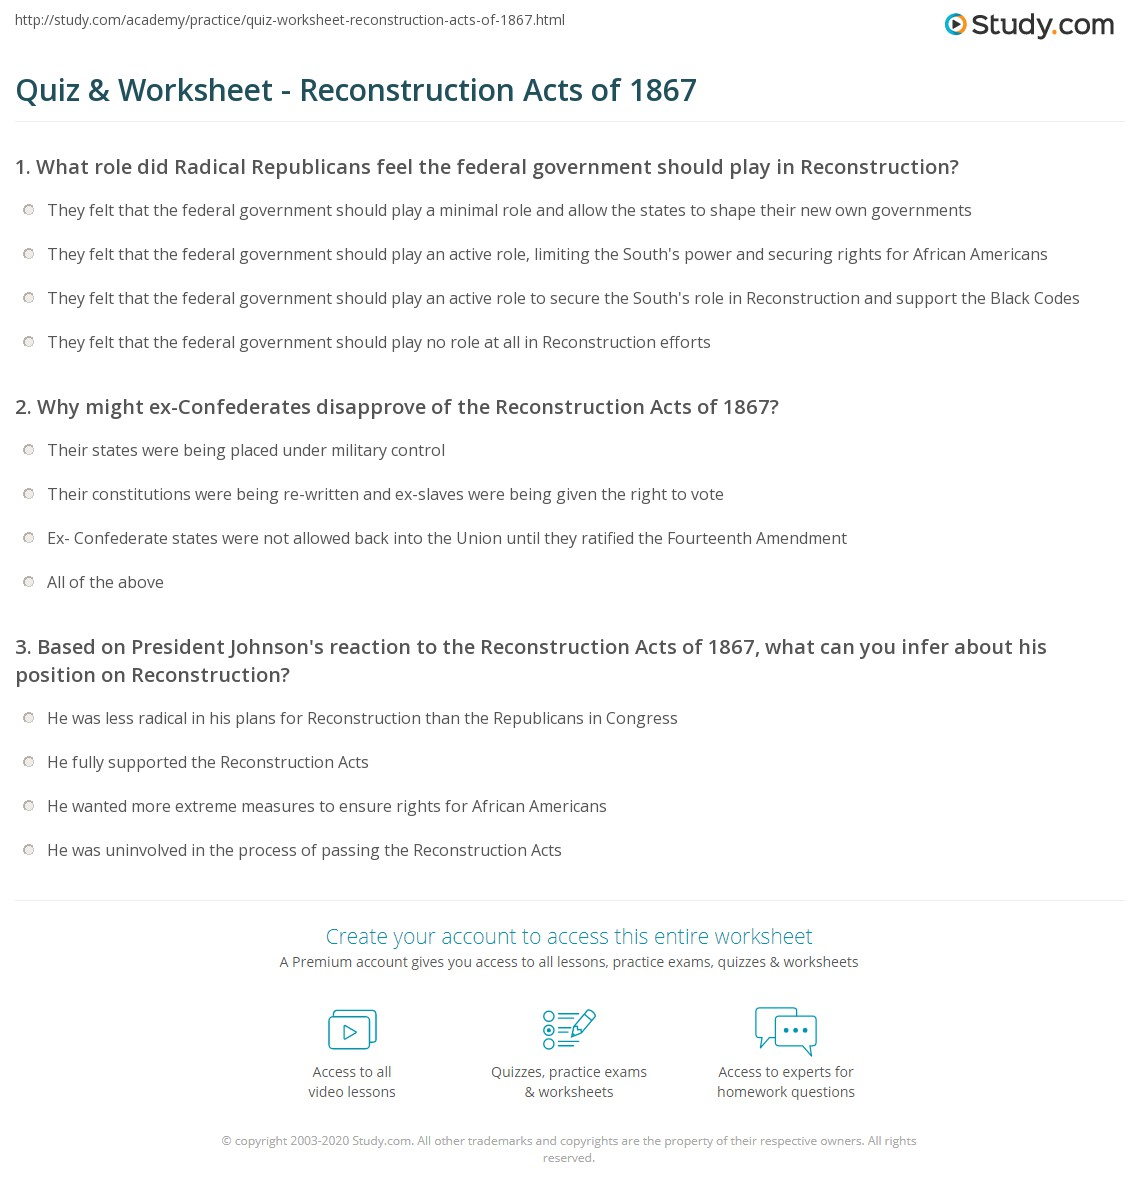 Quiz & Worksheet - Reconstruction Acts of 1867 | Study.com